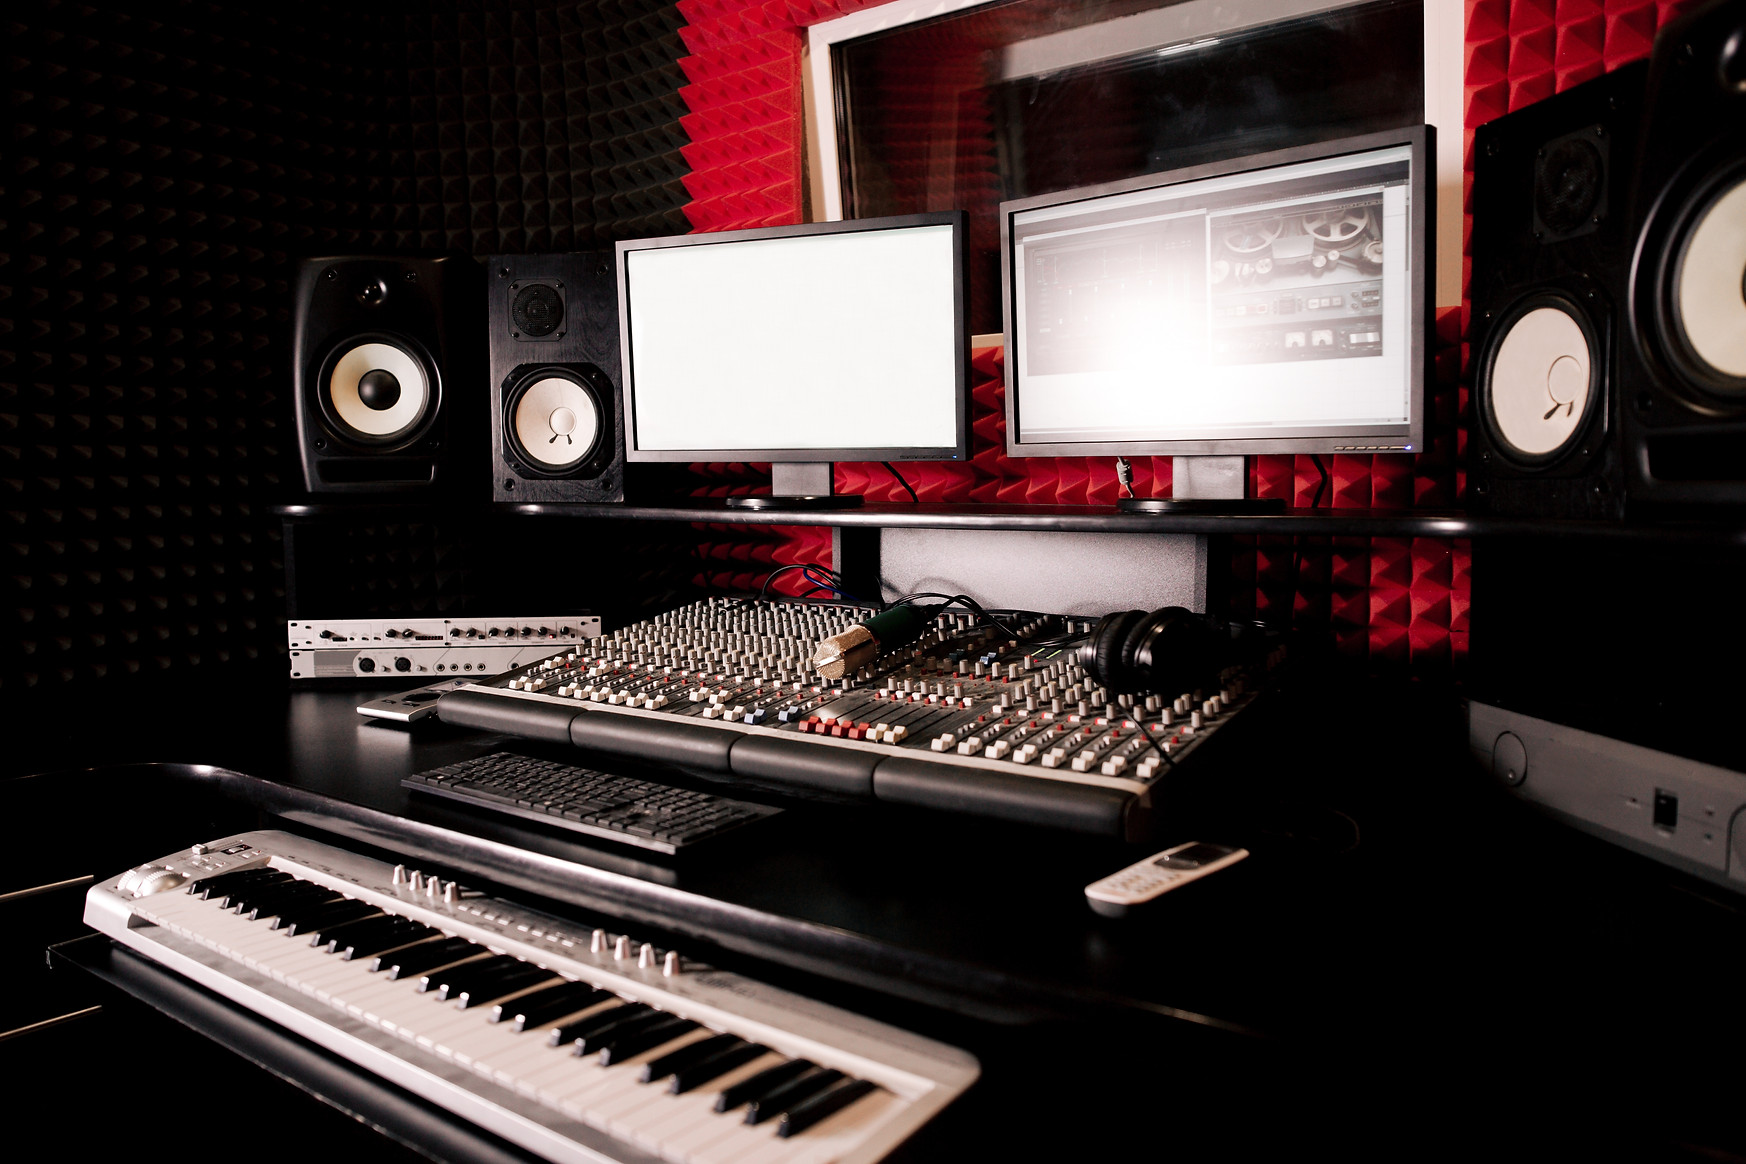 Recording Studio with a synthesizer and